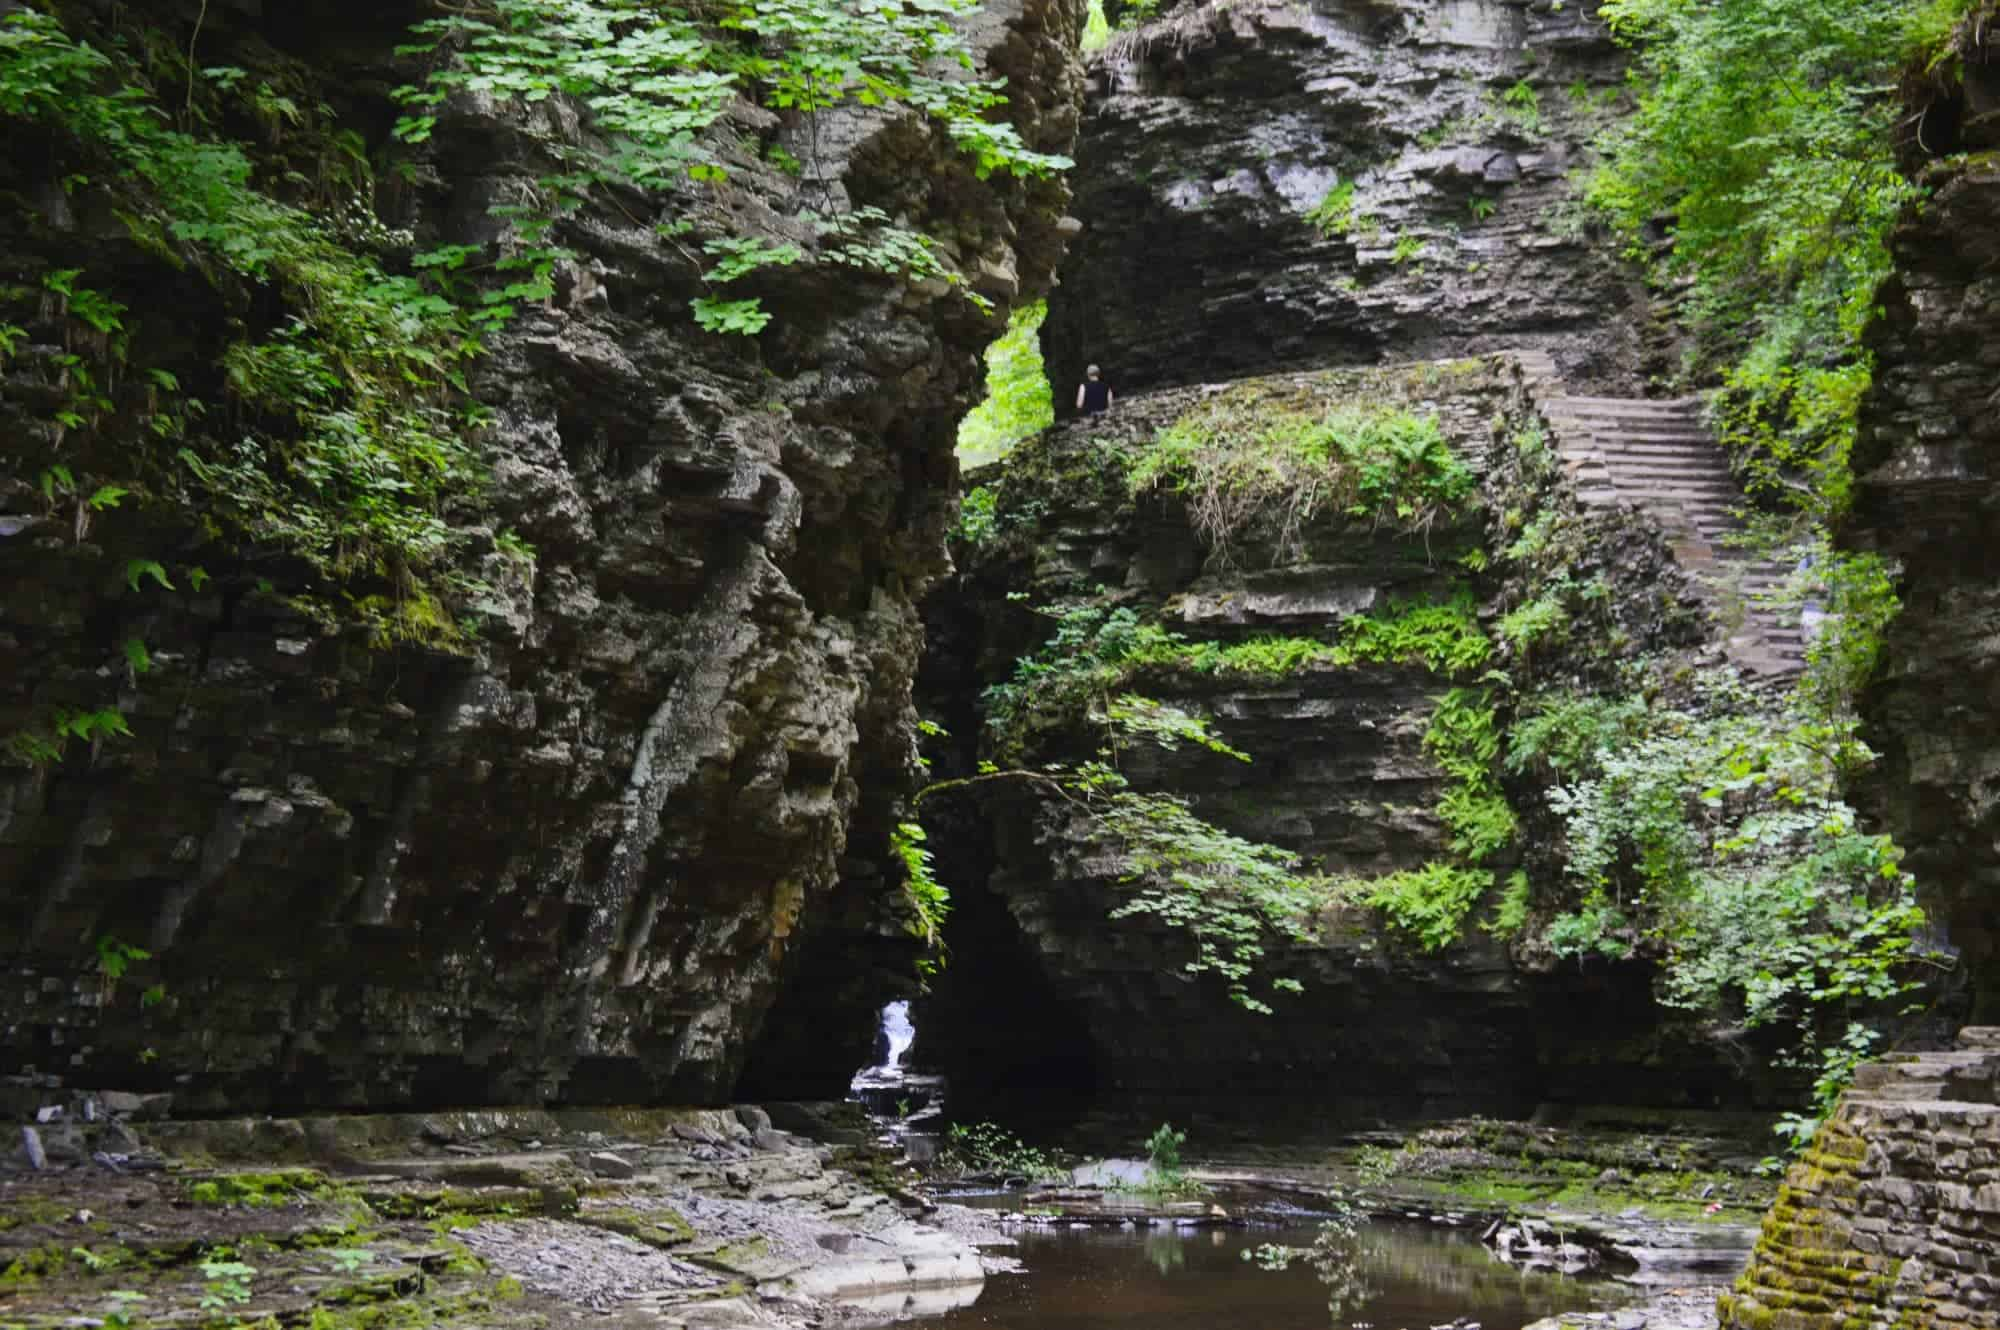 Watkins Glen State Park // Explore the beautiful East Coast by car with these 5 adventurous East Coast road trips, from the mountains of Maine to the Florida coast.